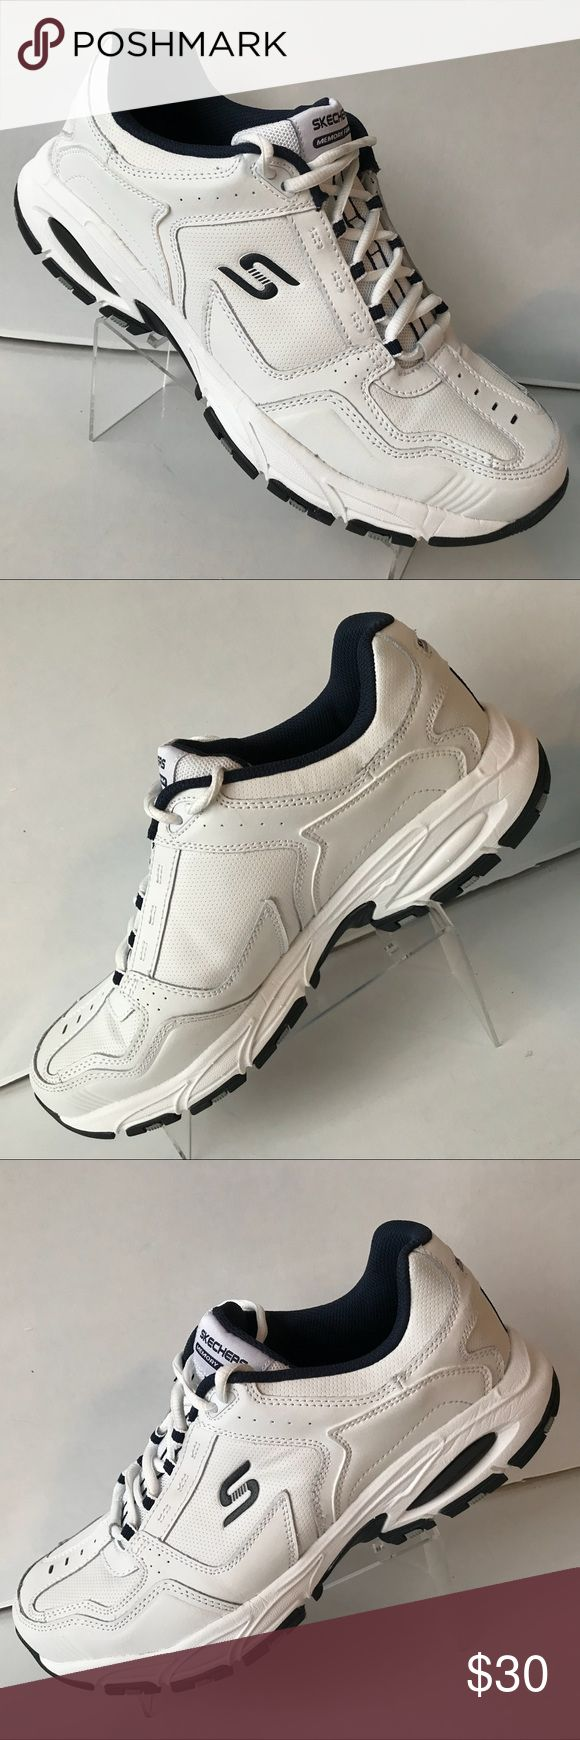 Store Sample Men's Athletic Shoes Skechers Sport Memory Foam White/navy Freefall Stanza Shoes SZ 11~STORE SAMPLE~ Skechers Shoes Sneakers